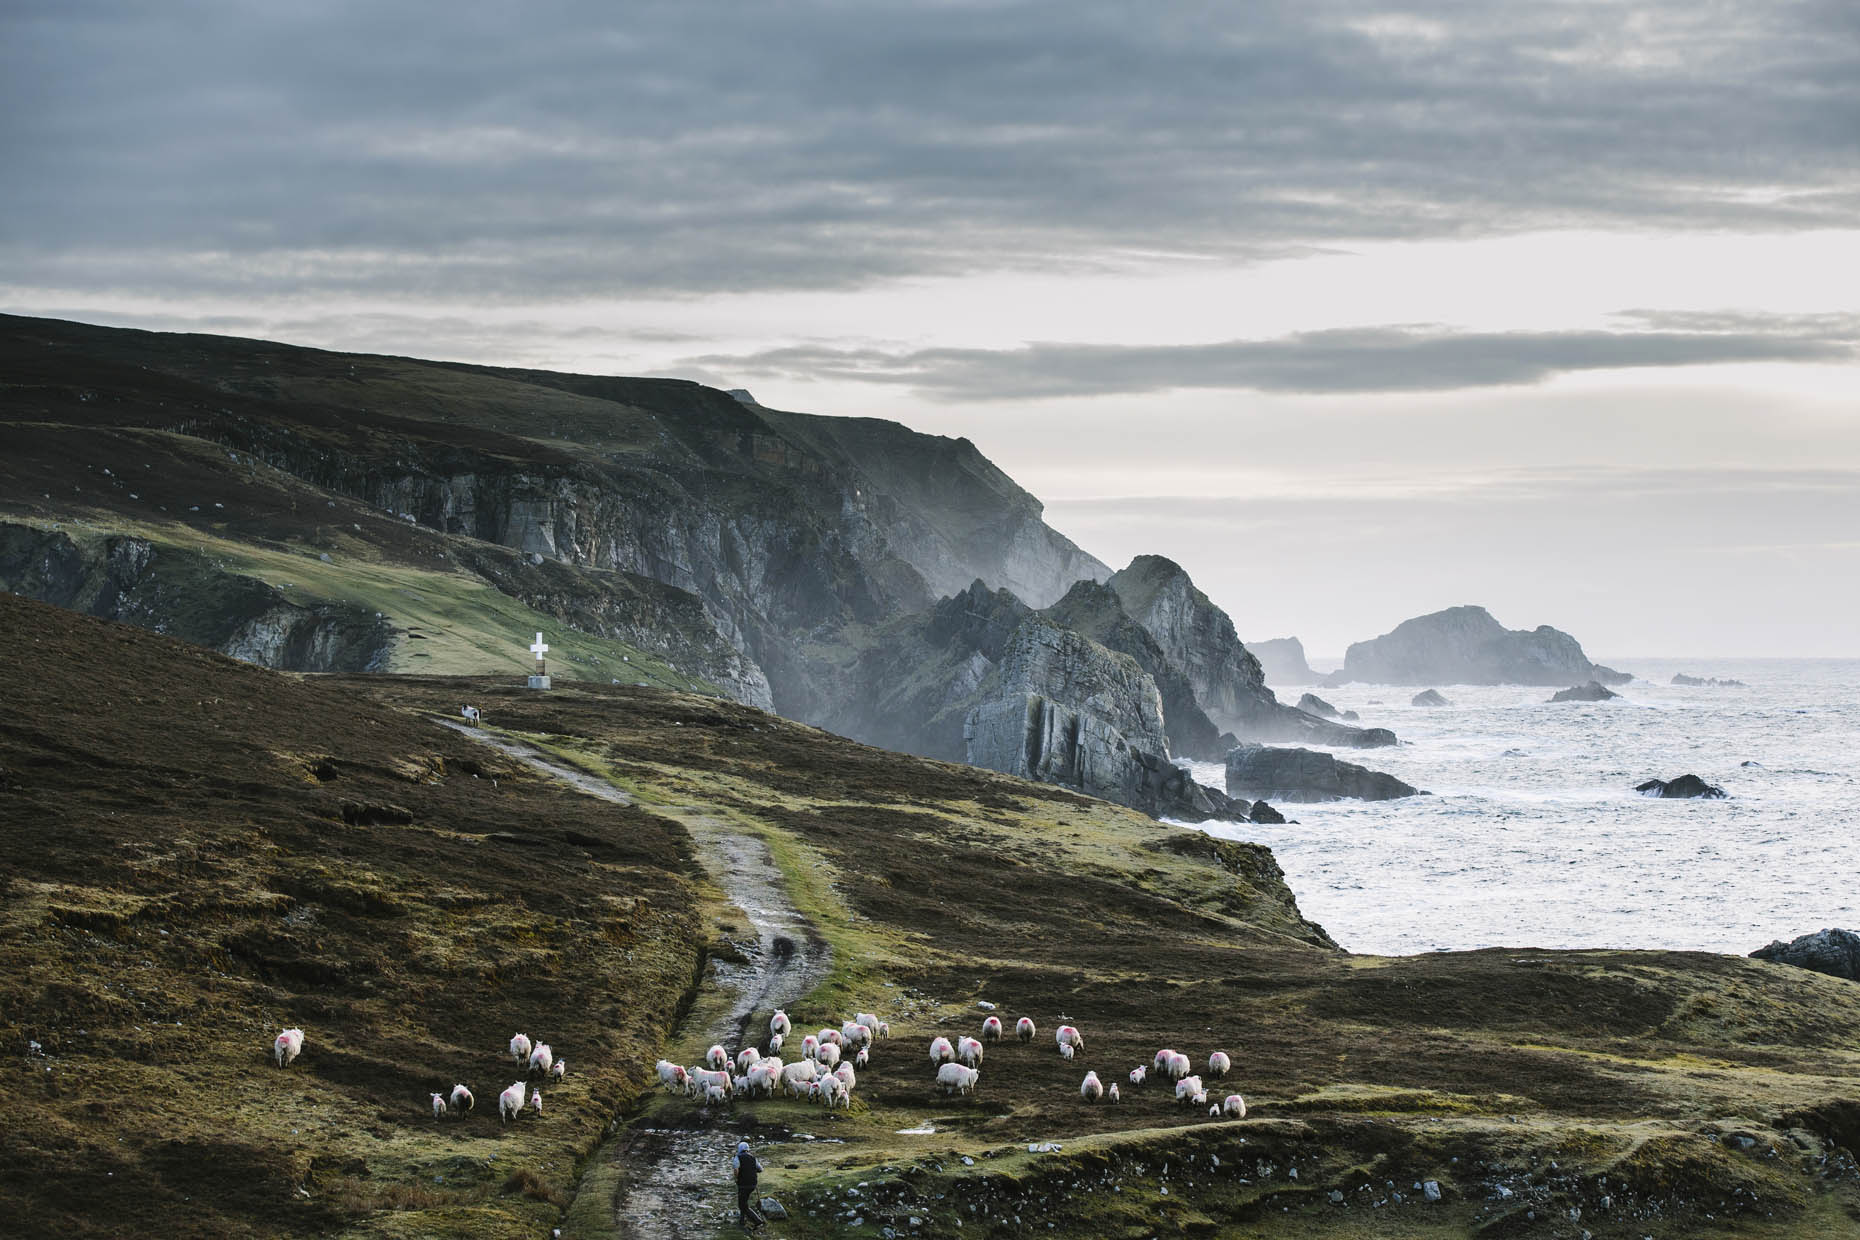 Adventure Tourism along the Wild Atlantic Way in Donegal, Ireland